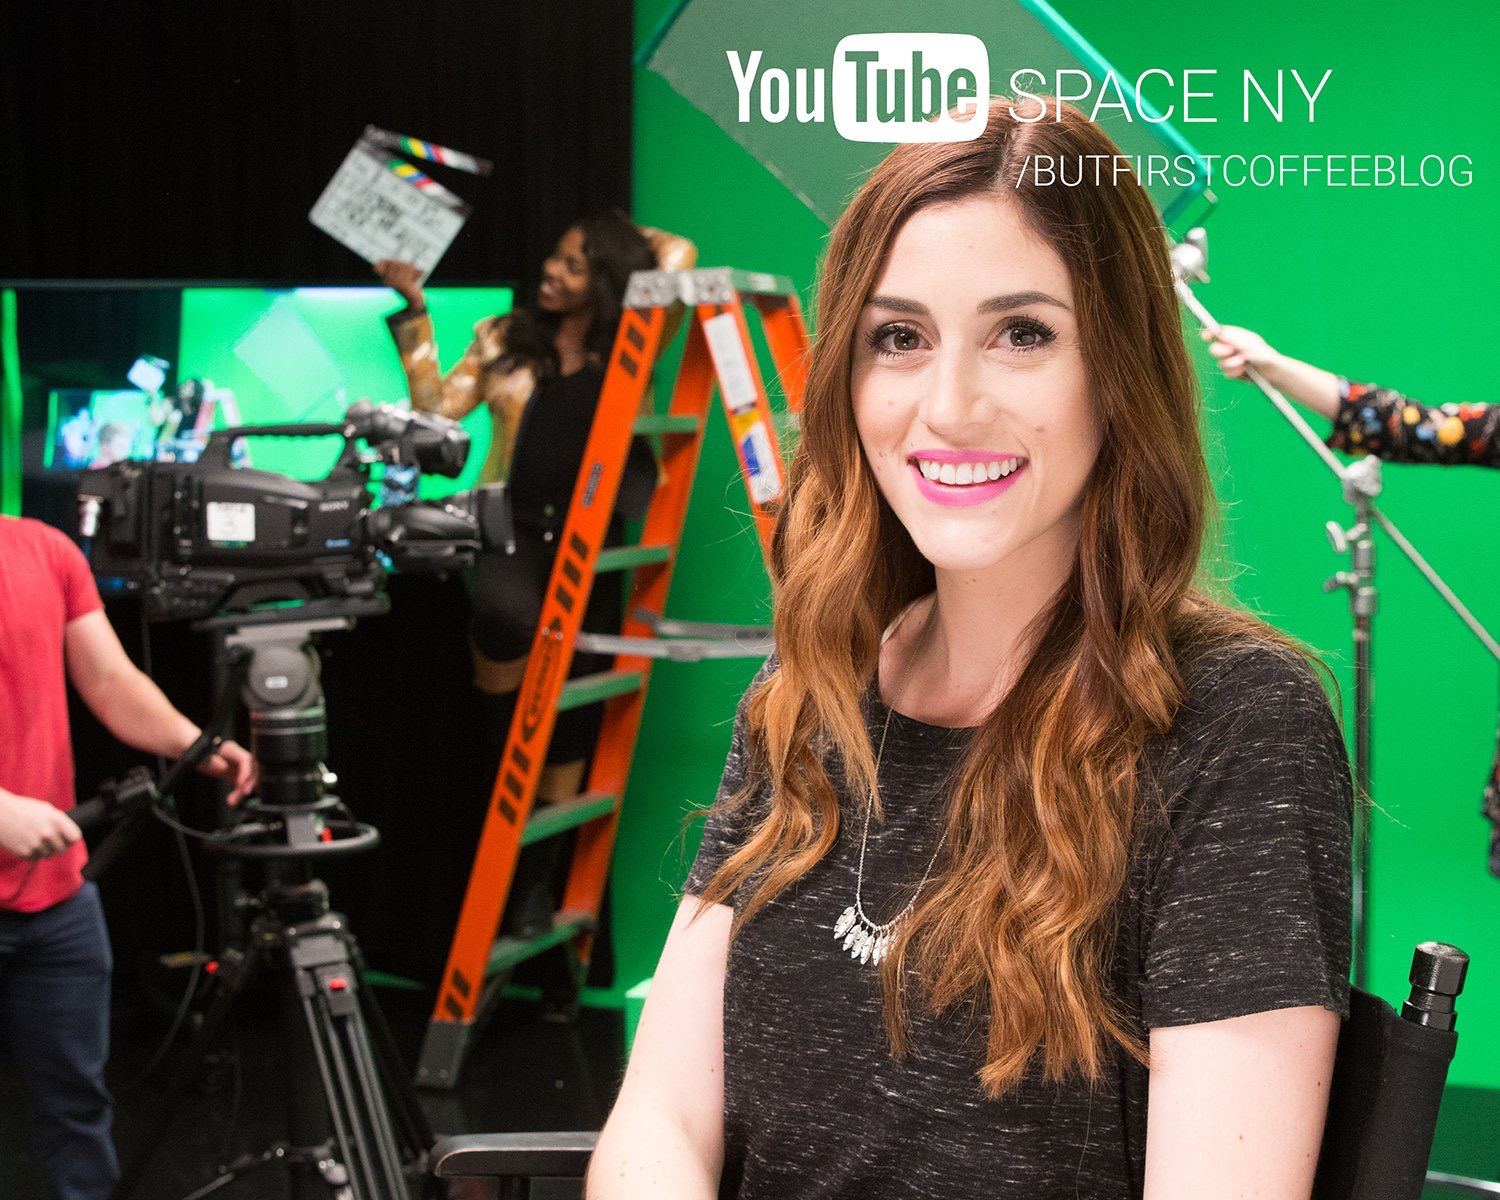 5 Things Having a YouTube Channel Has Taught Me